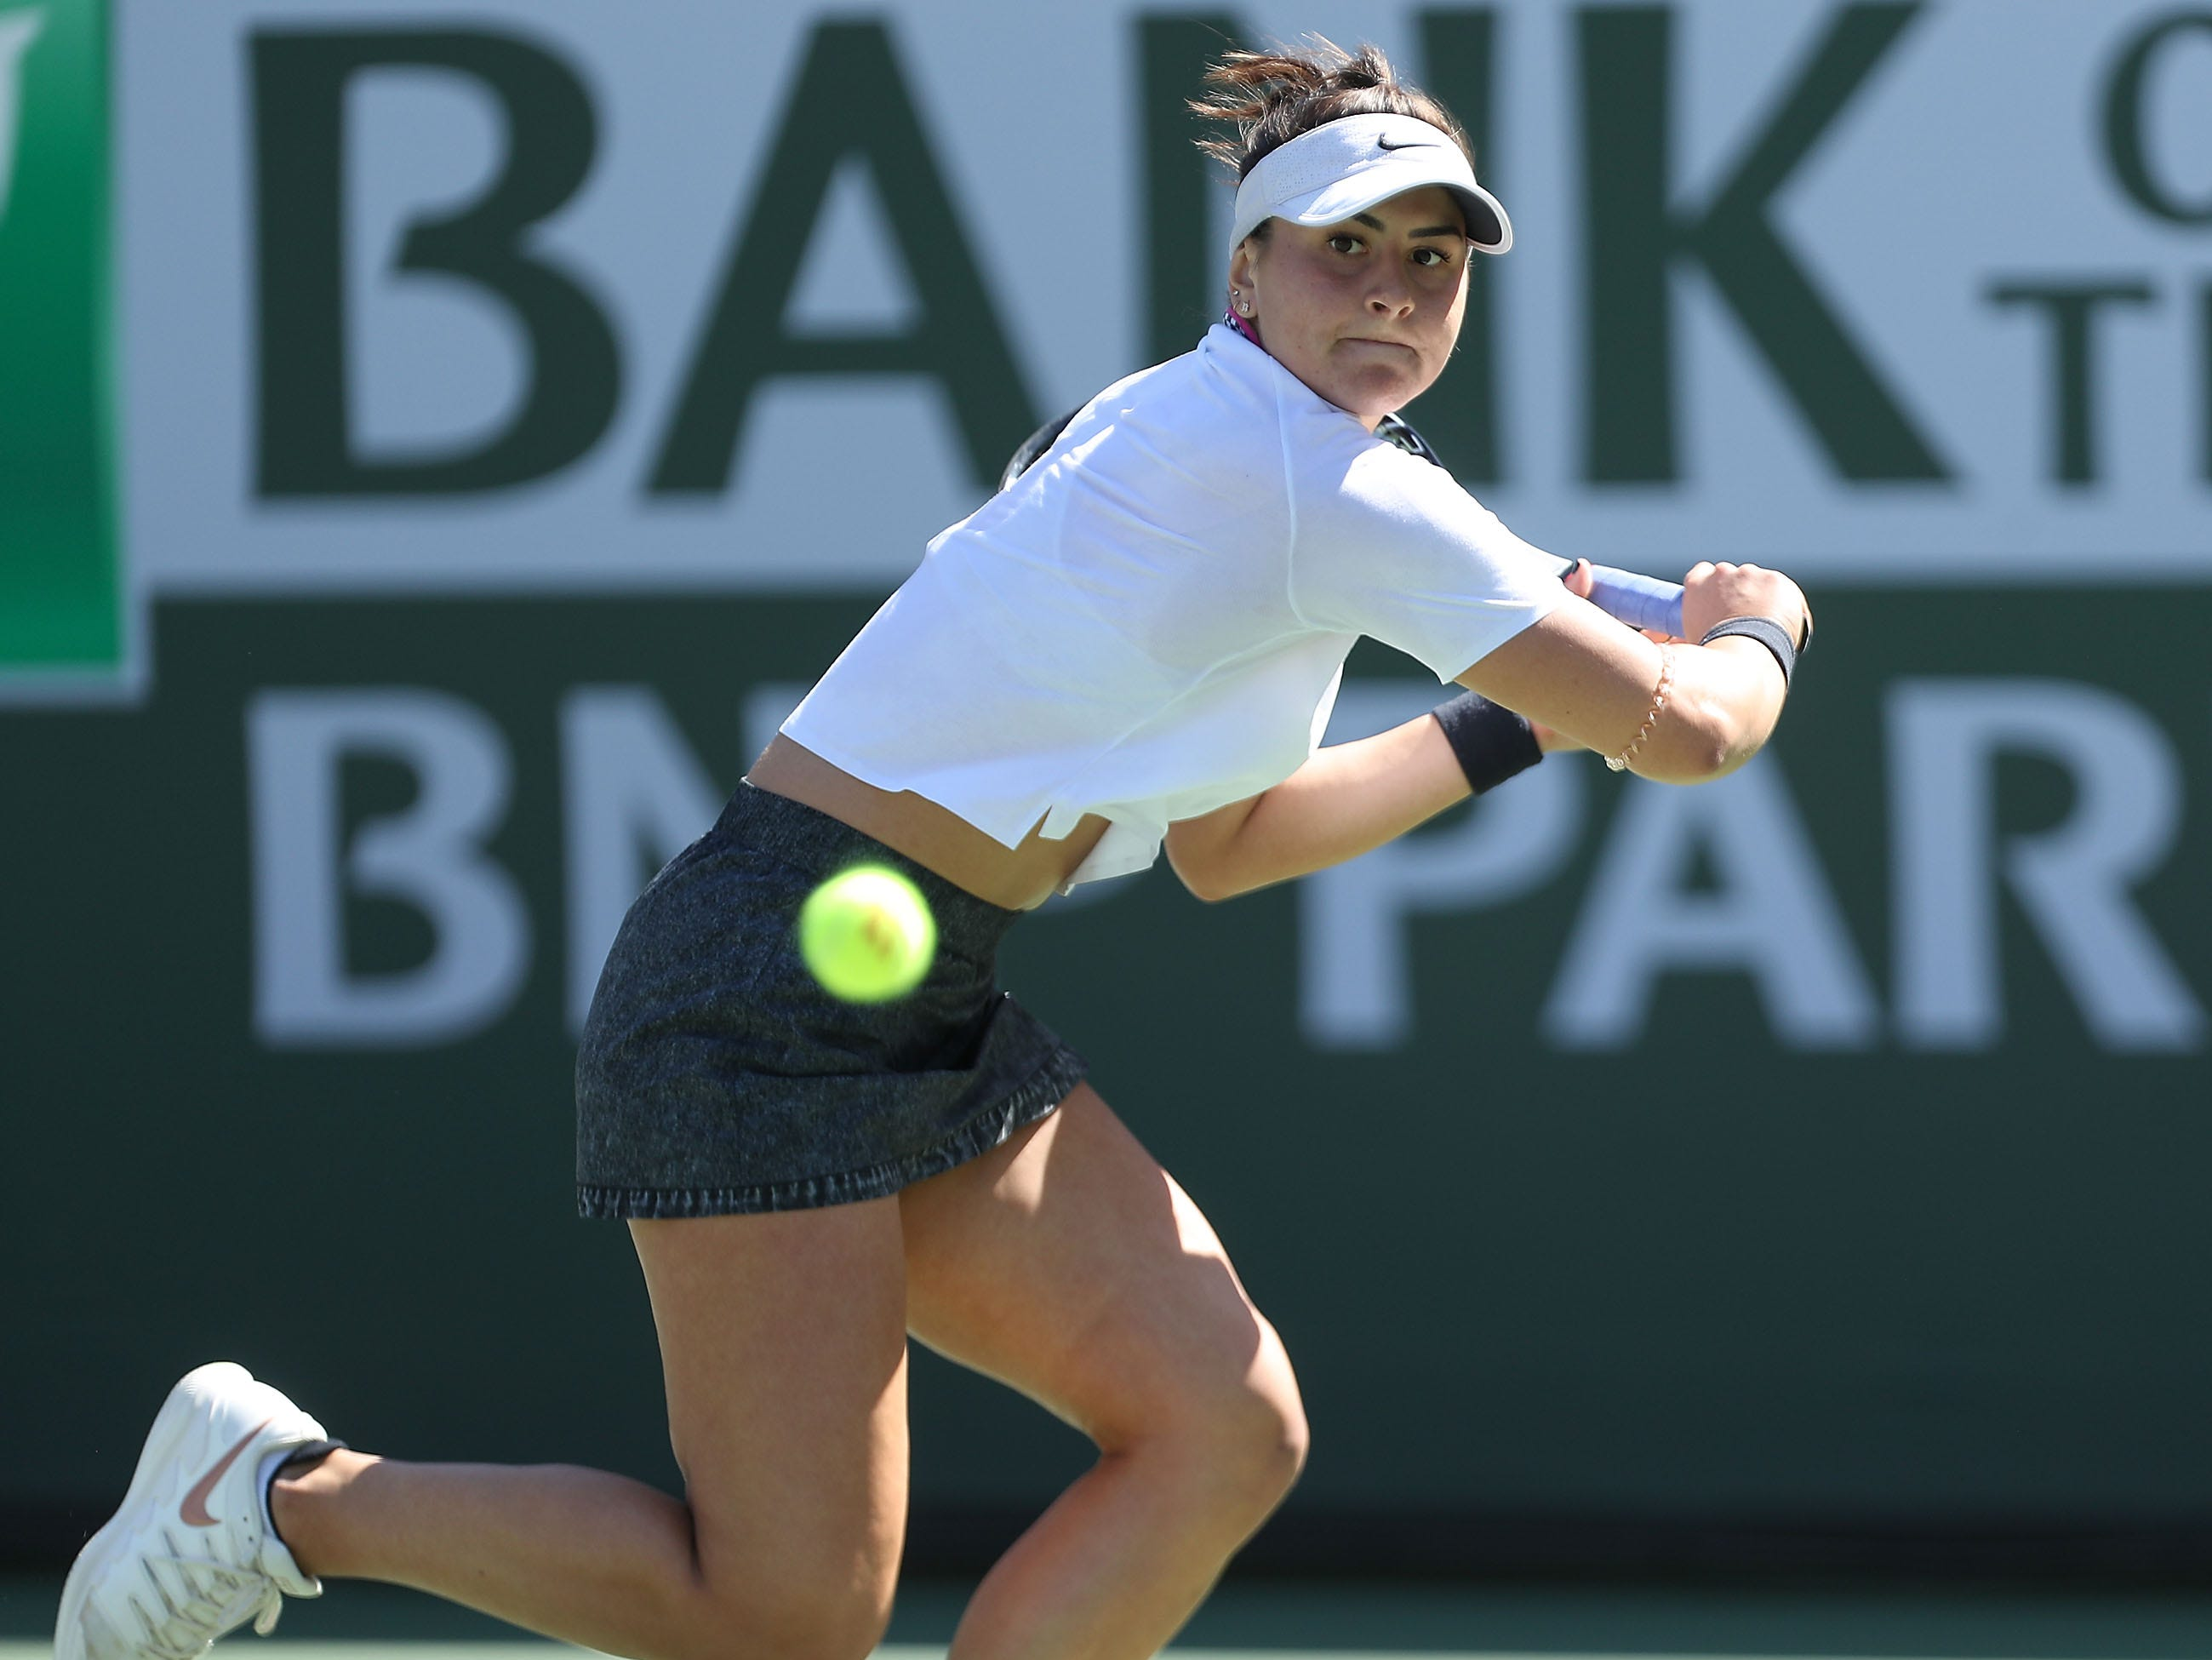 Bianca Andreescu reaches for a shot during her win over Garbine Muguruza at the BNP Paribas Open in Indian Wells, March 13, 2019.